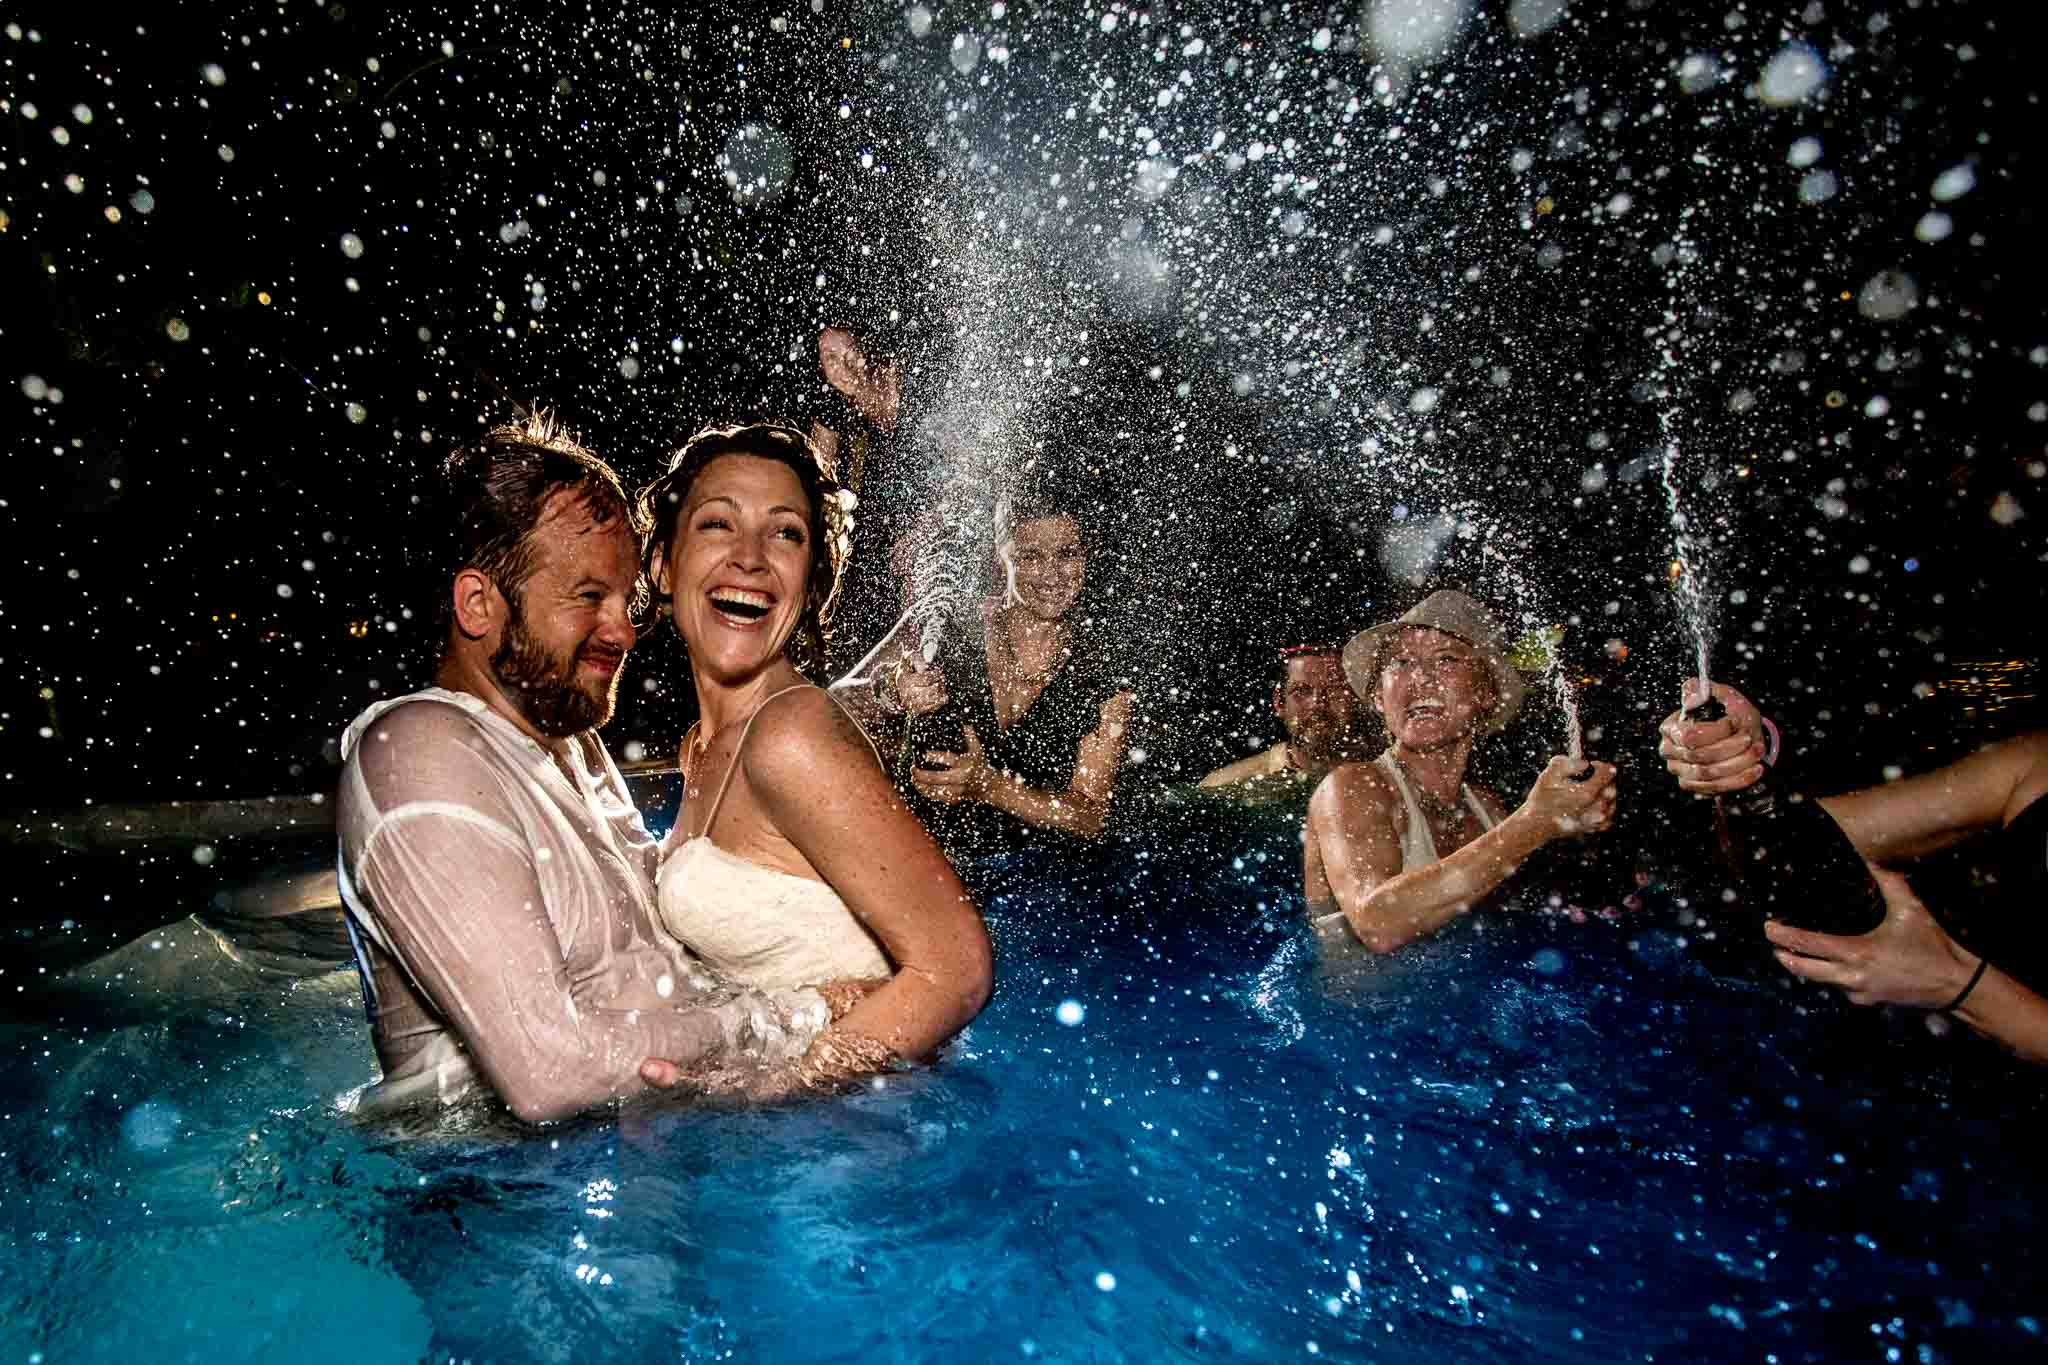 Champagne toast surprise for Bride and Groom exploding everywhere in air in pool with everyone soaking wet